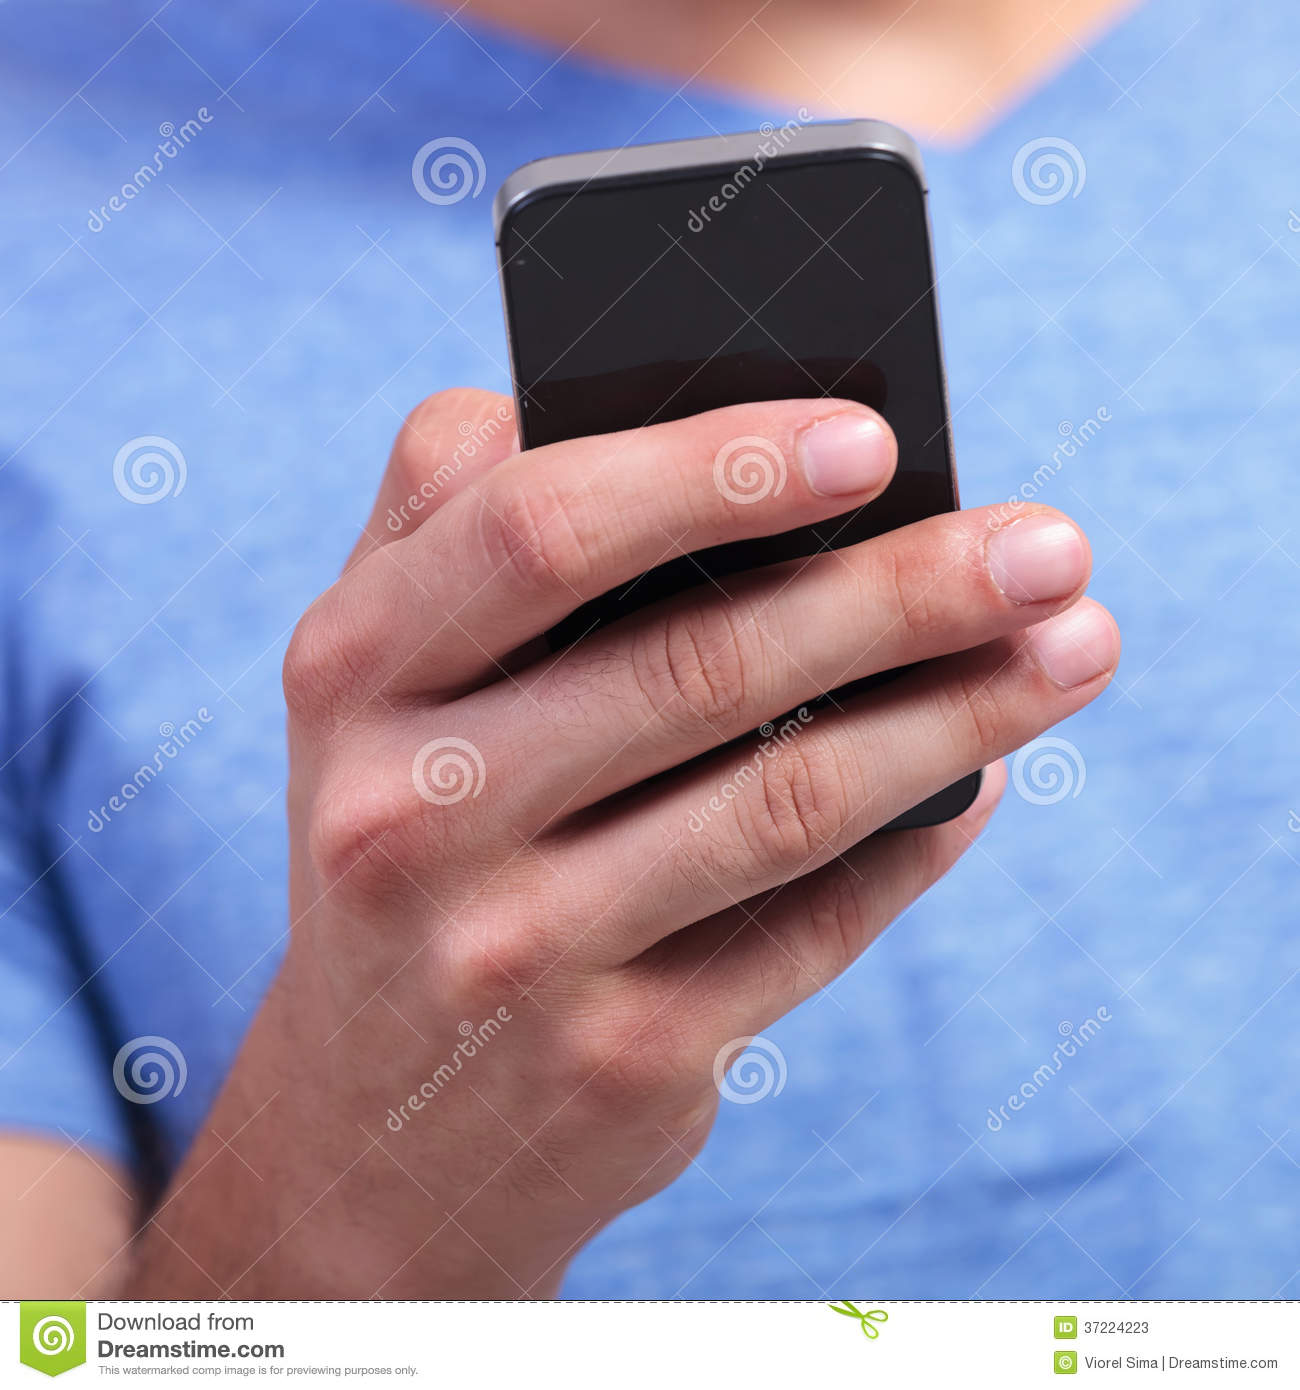 Hand Of A Man Holding A Smartphone Stock Image - Image of ...